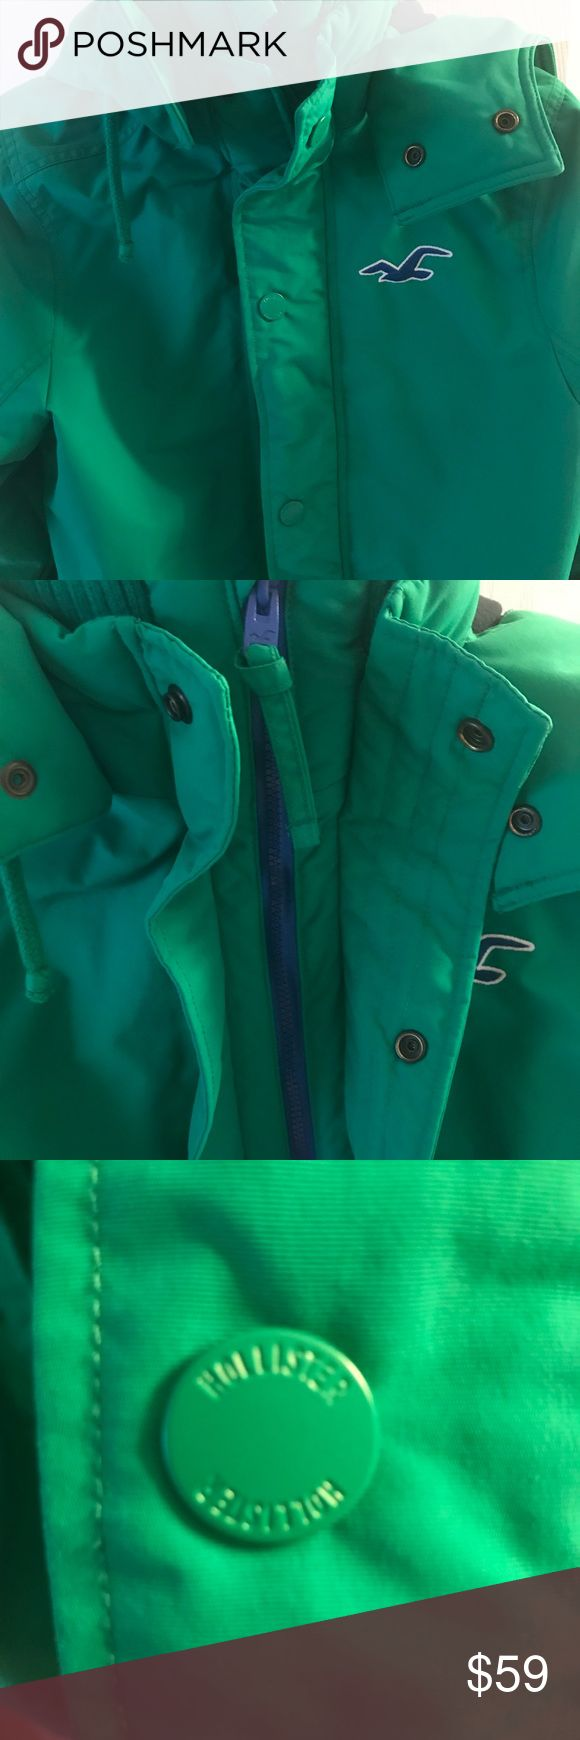 Hollister California winter coat with hood. Warm. Hollister insulated men's hooded jacket. Gorgeous green color. Excellent condition. Hardly worn. Smoke free home. Hollister Jackets & Coats Ski & Snowboard